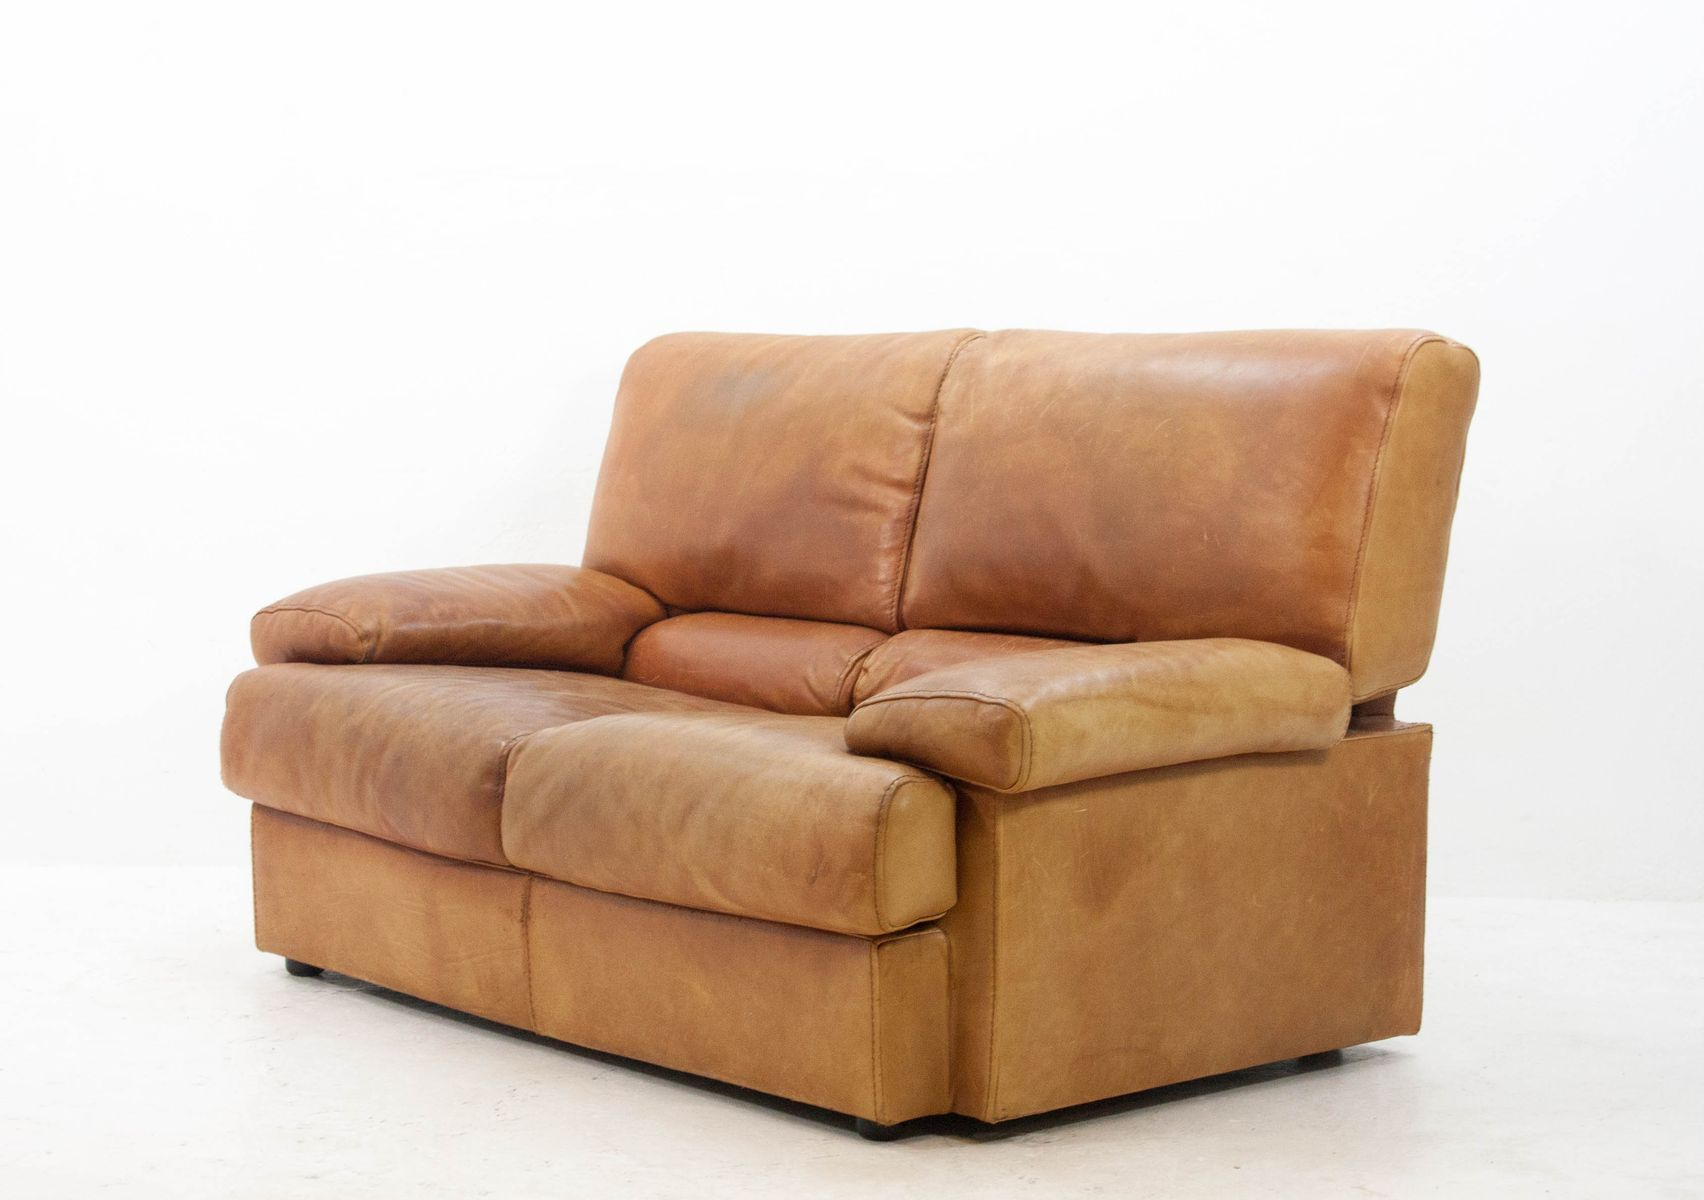 Vintage 2 Seater Butterscotch Leather Sofa from Cierre Imbottiti